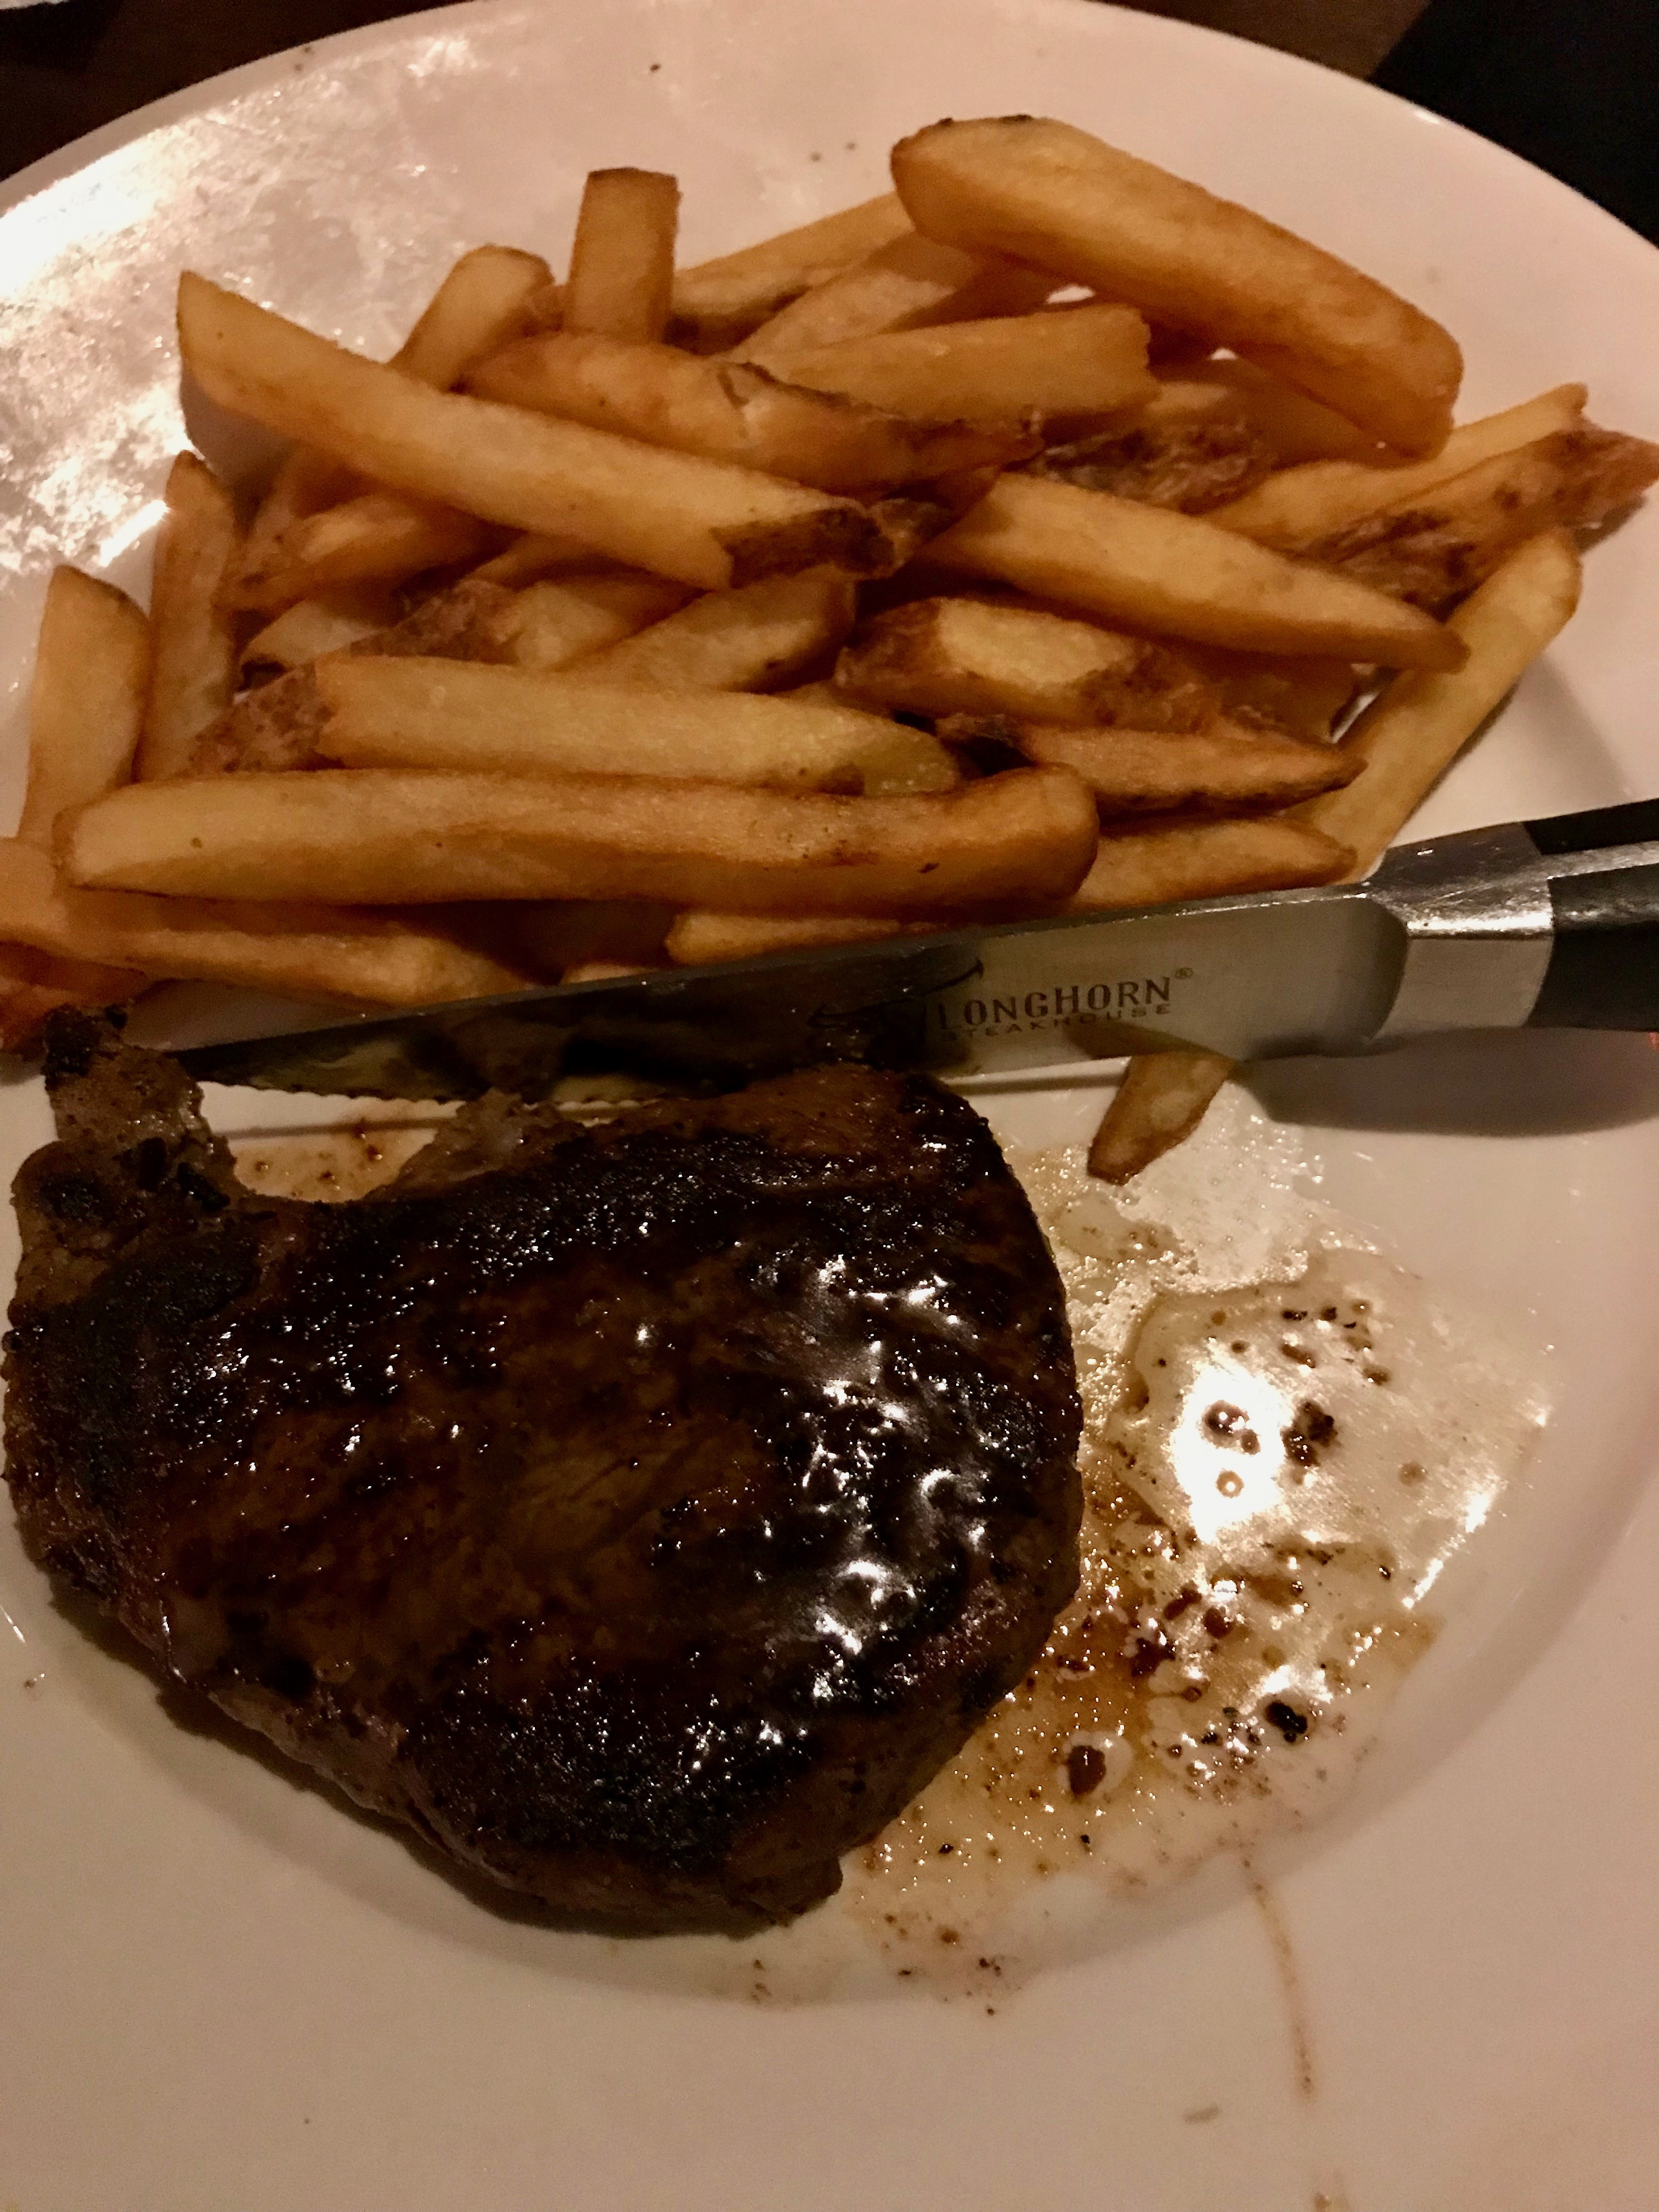 What to Order at LongHorn Steakhouse if You Have Dietary Restrictions